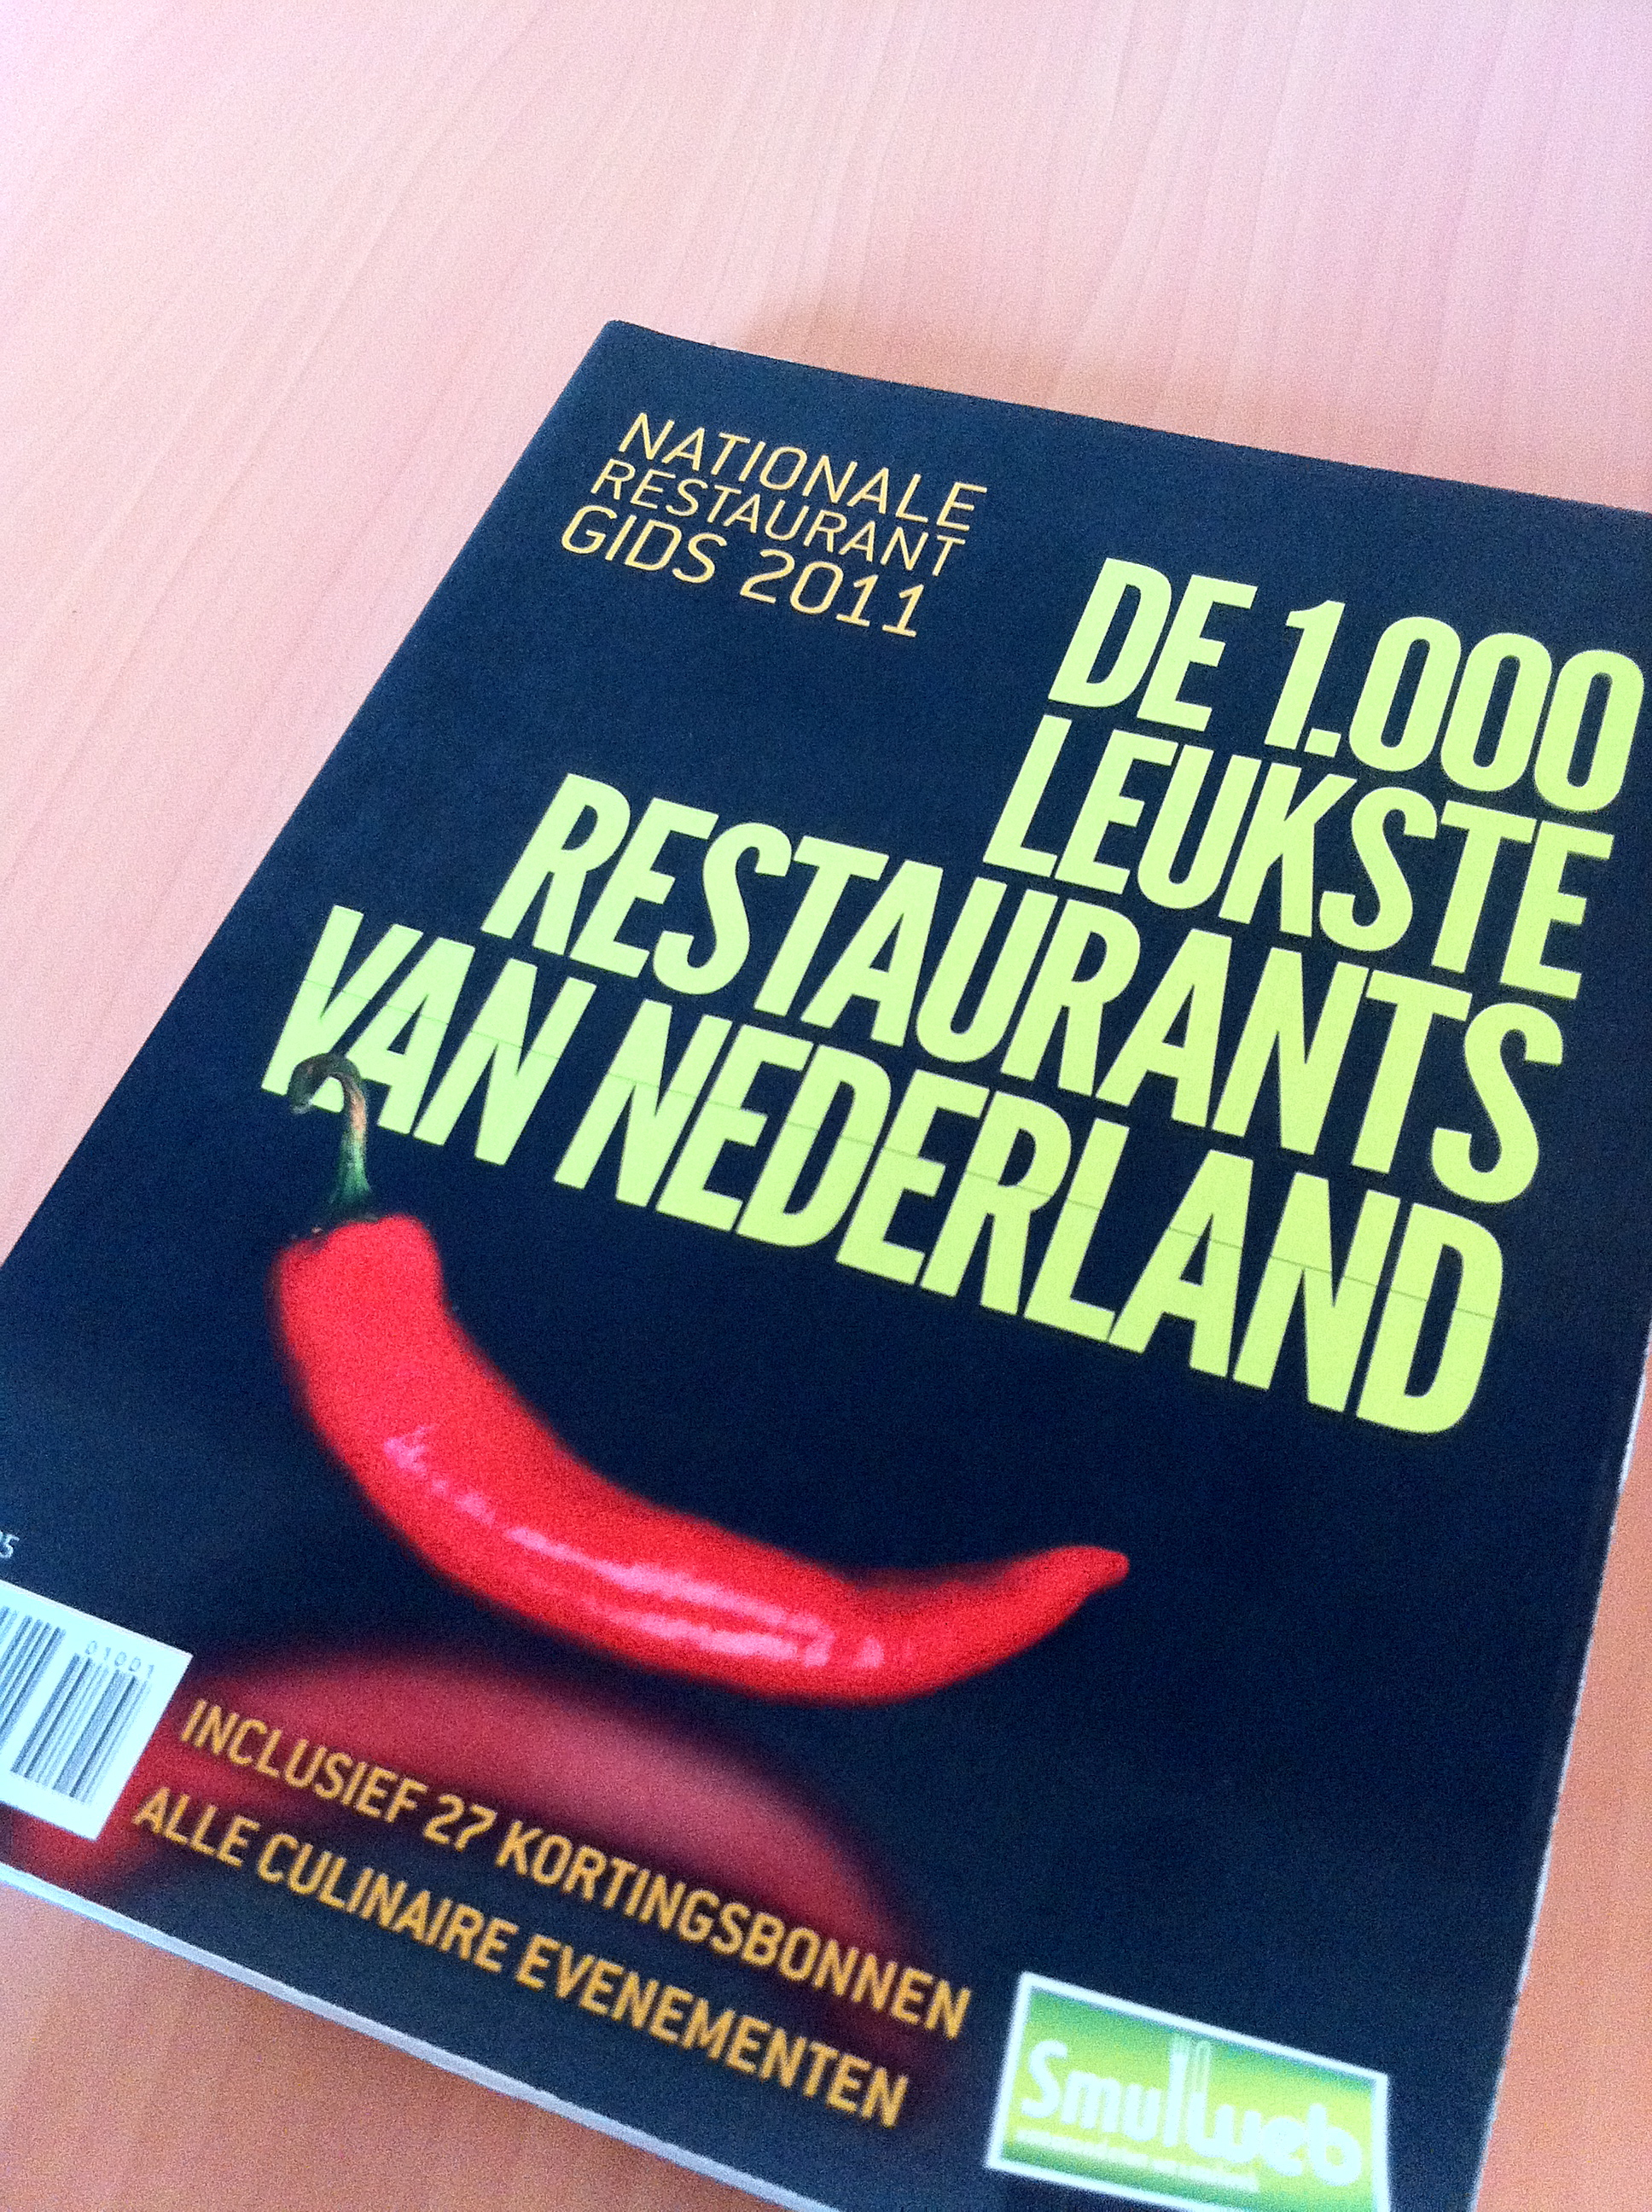 Nationale Restaurantgids 2011